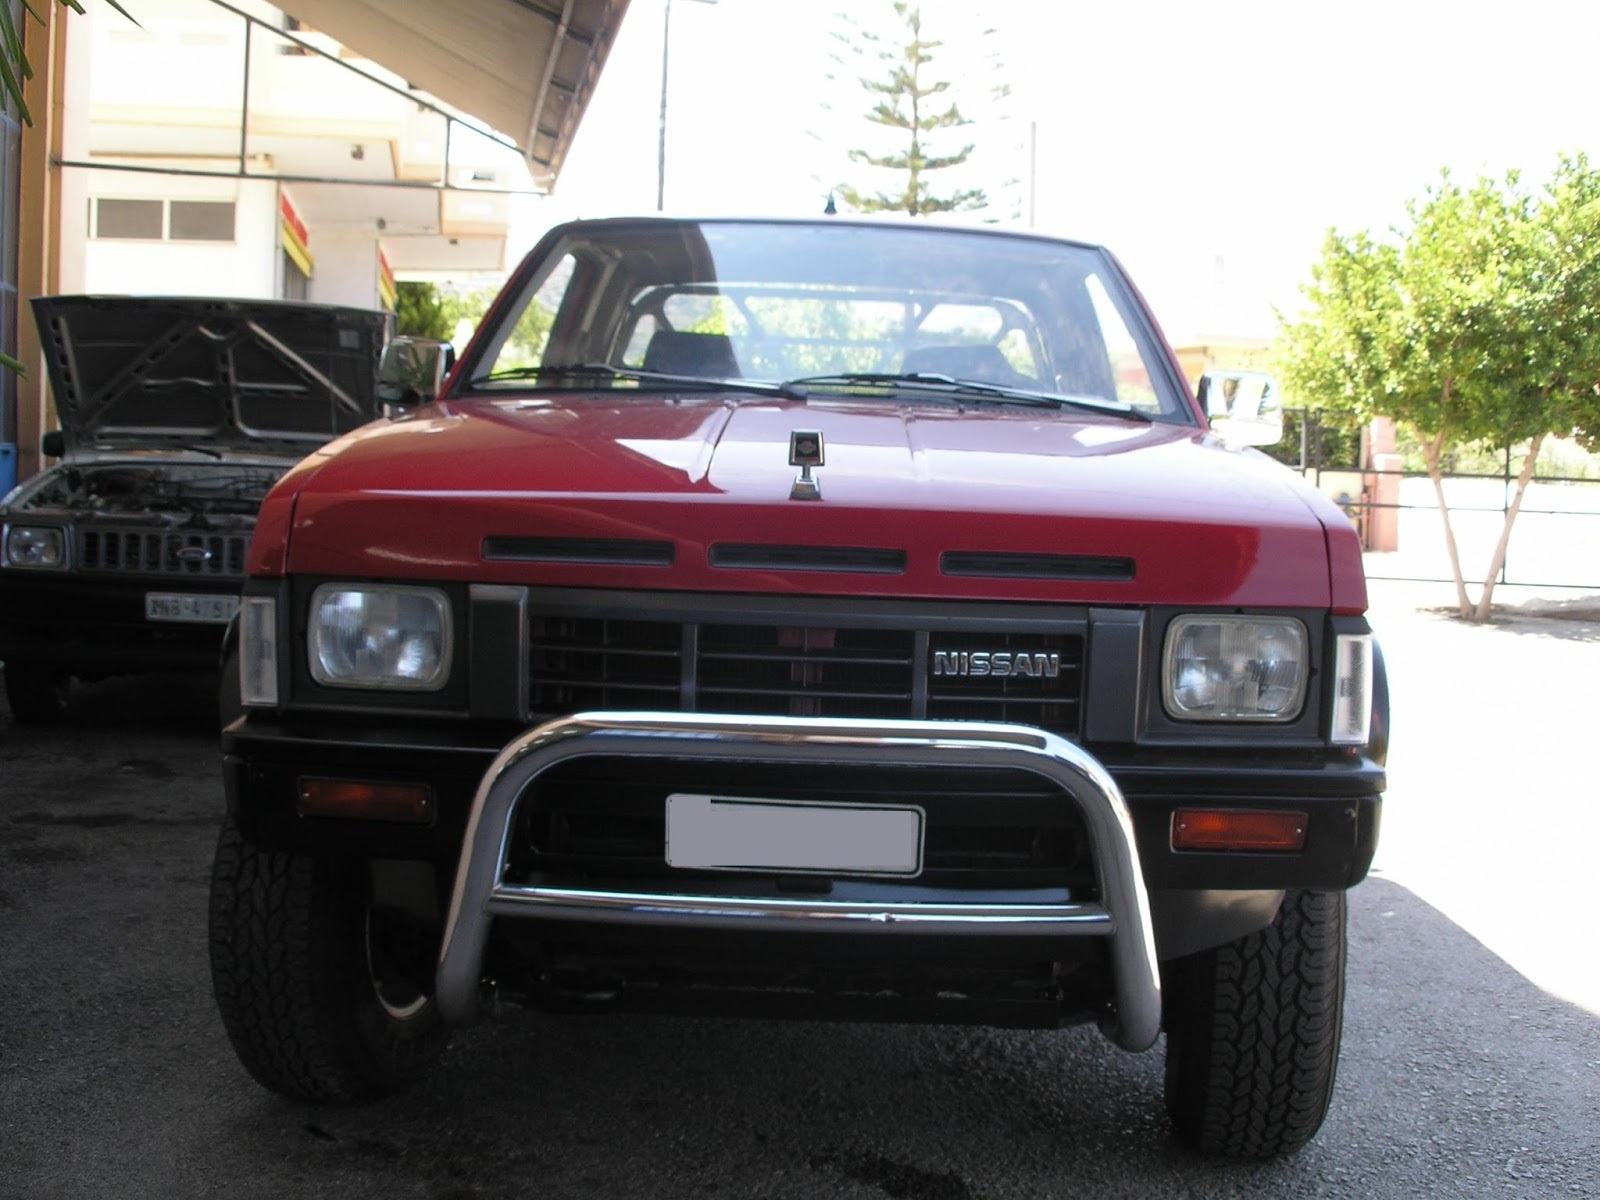 Nissan D21 4X4 hd photo